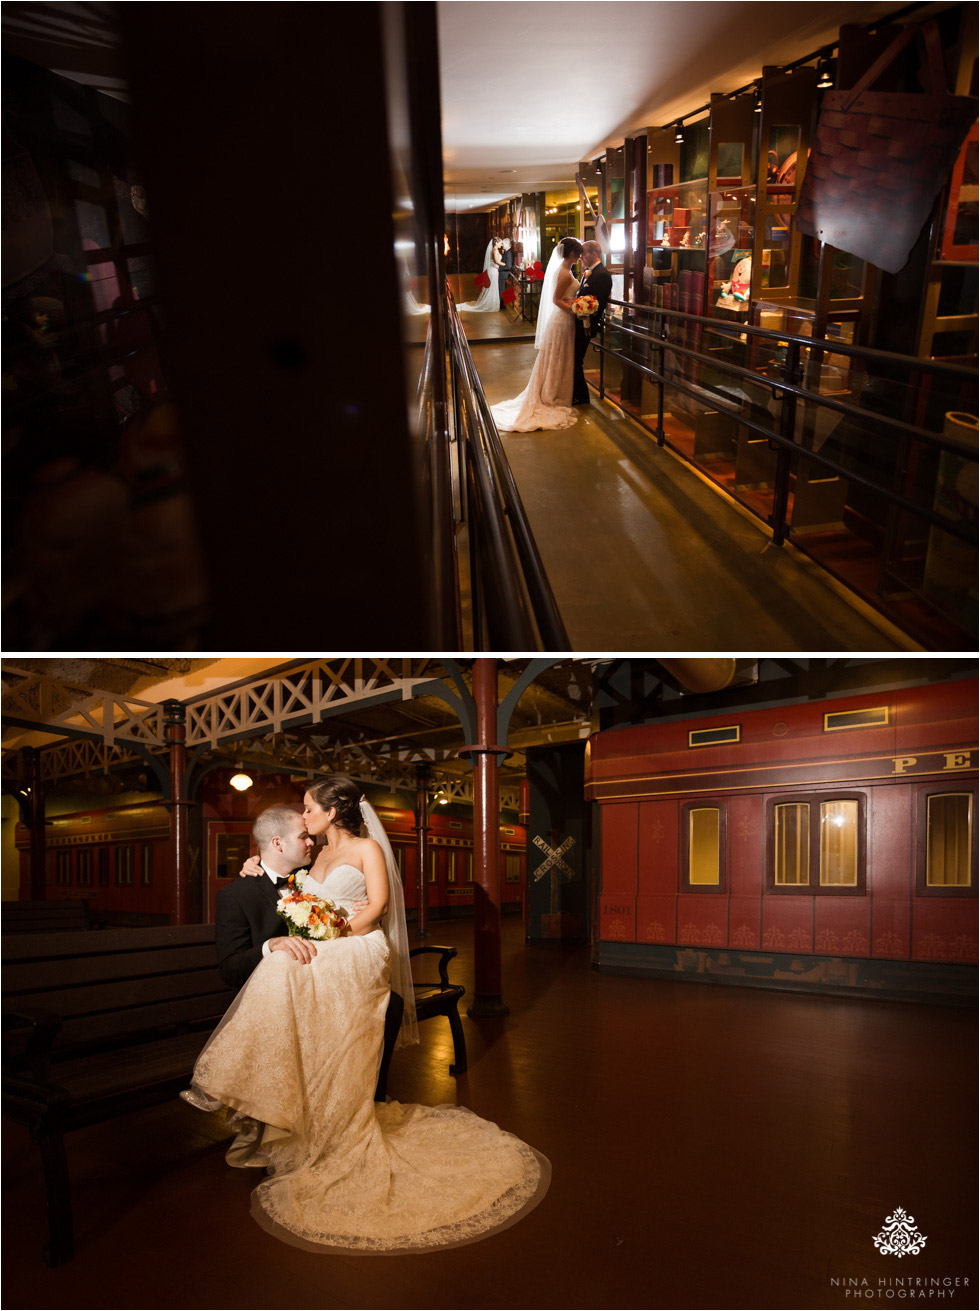 Bride and groom at Please Touch Museum at Memorial Hall in Philadelphia, Pennsylvania - Blog of Nina Hintringer Photography - Wedding Photography, Wedding Reportage and Destination Weddings